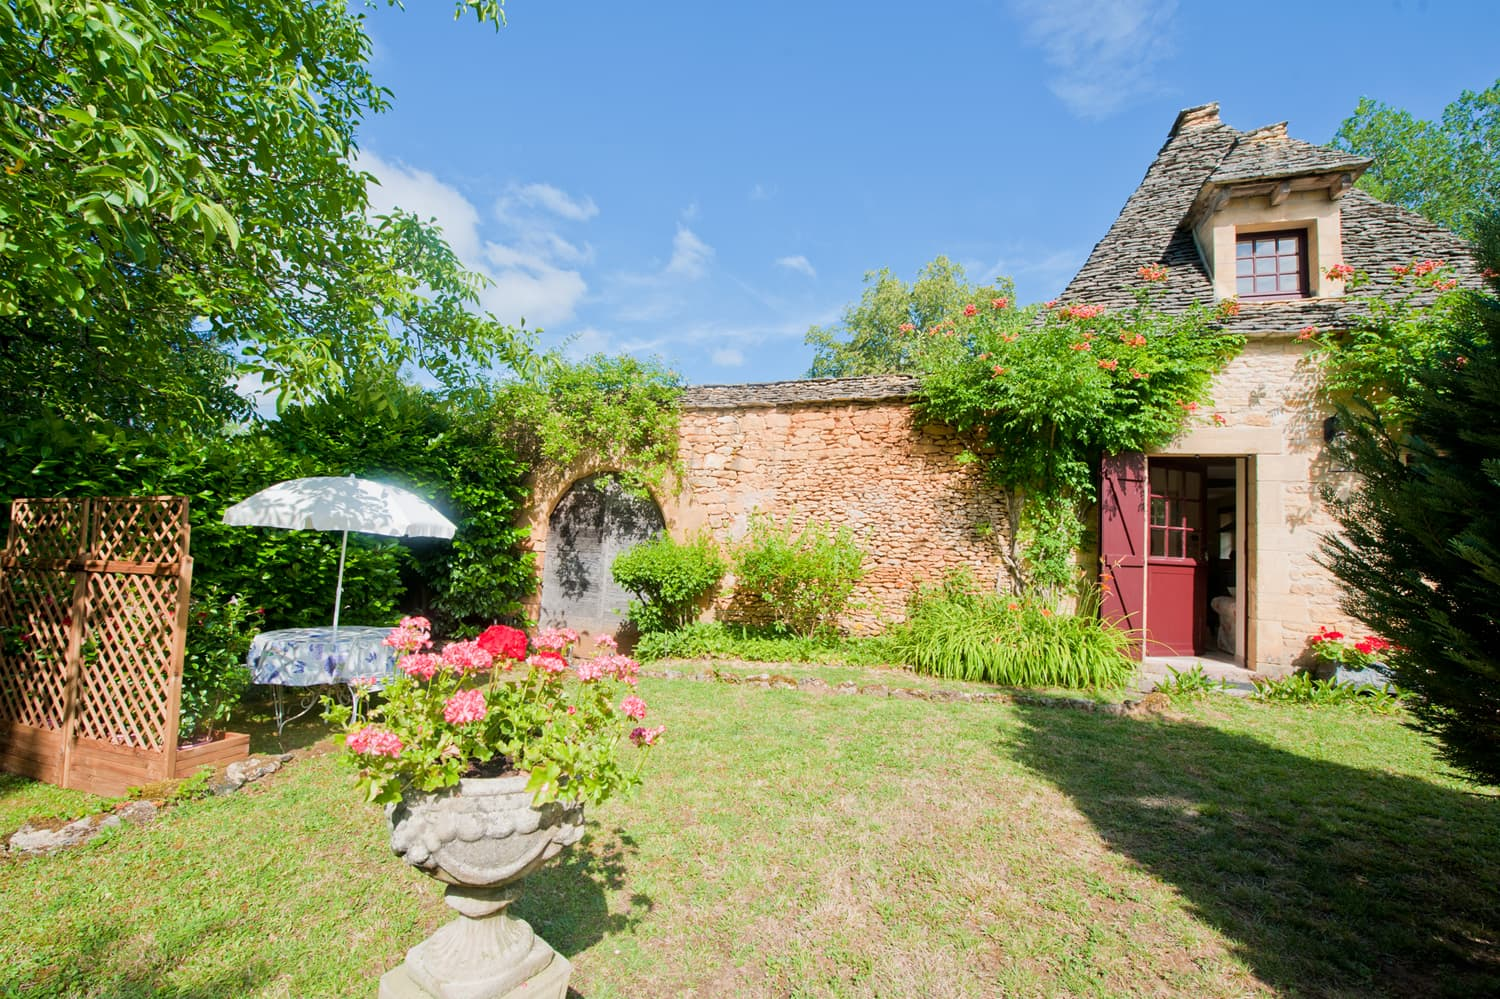 Rental cottage in Dordogne